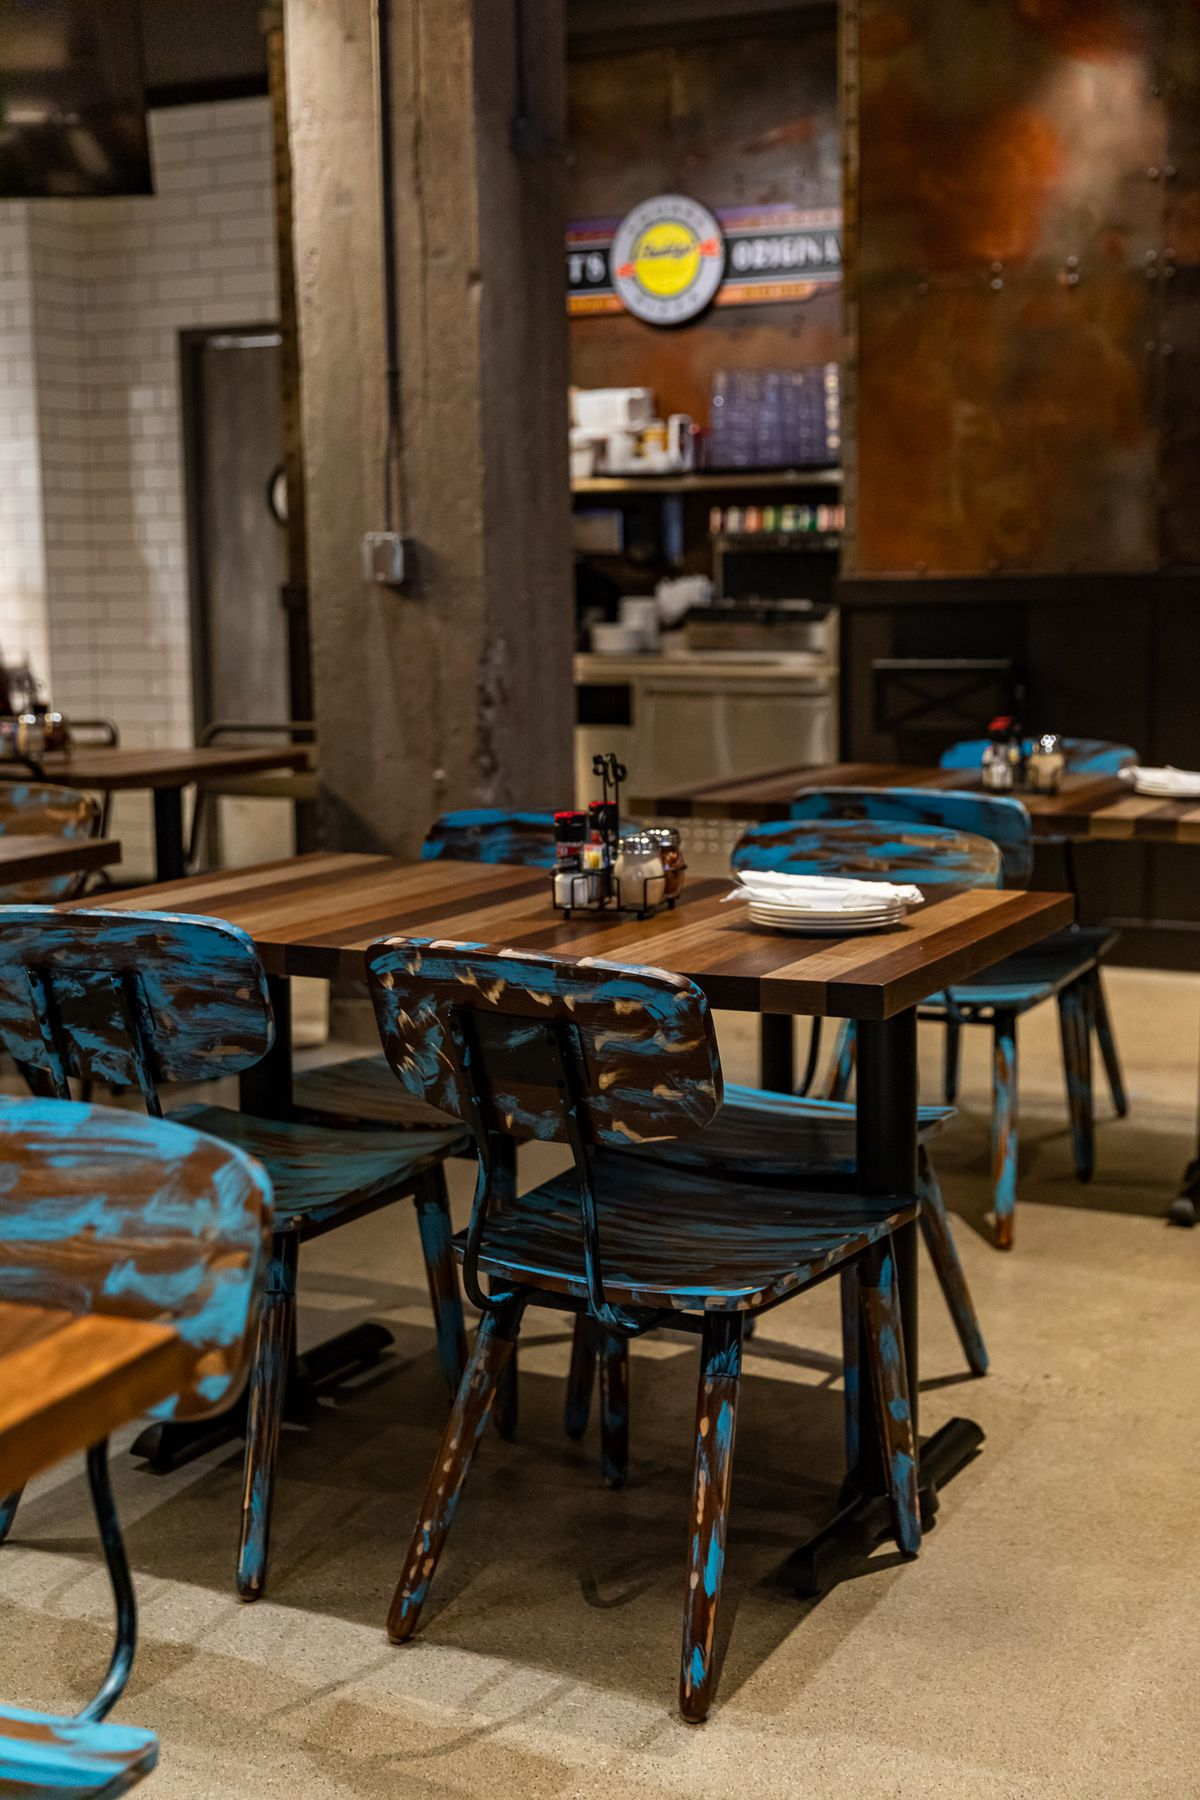 Wildly painted blue schoolhouse chairs at Buddy's Pizza surround striped wood tables.